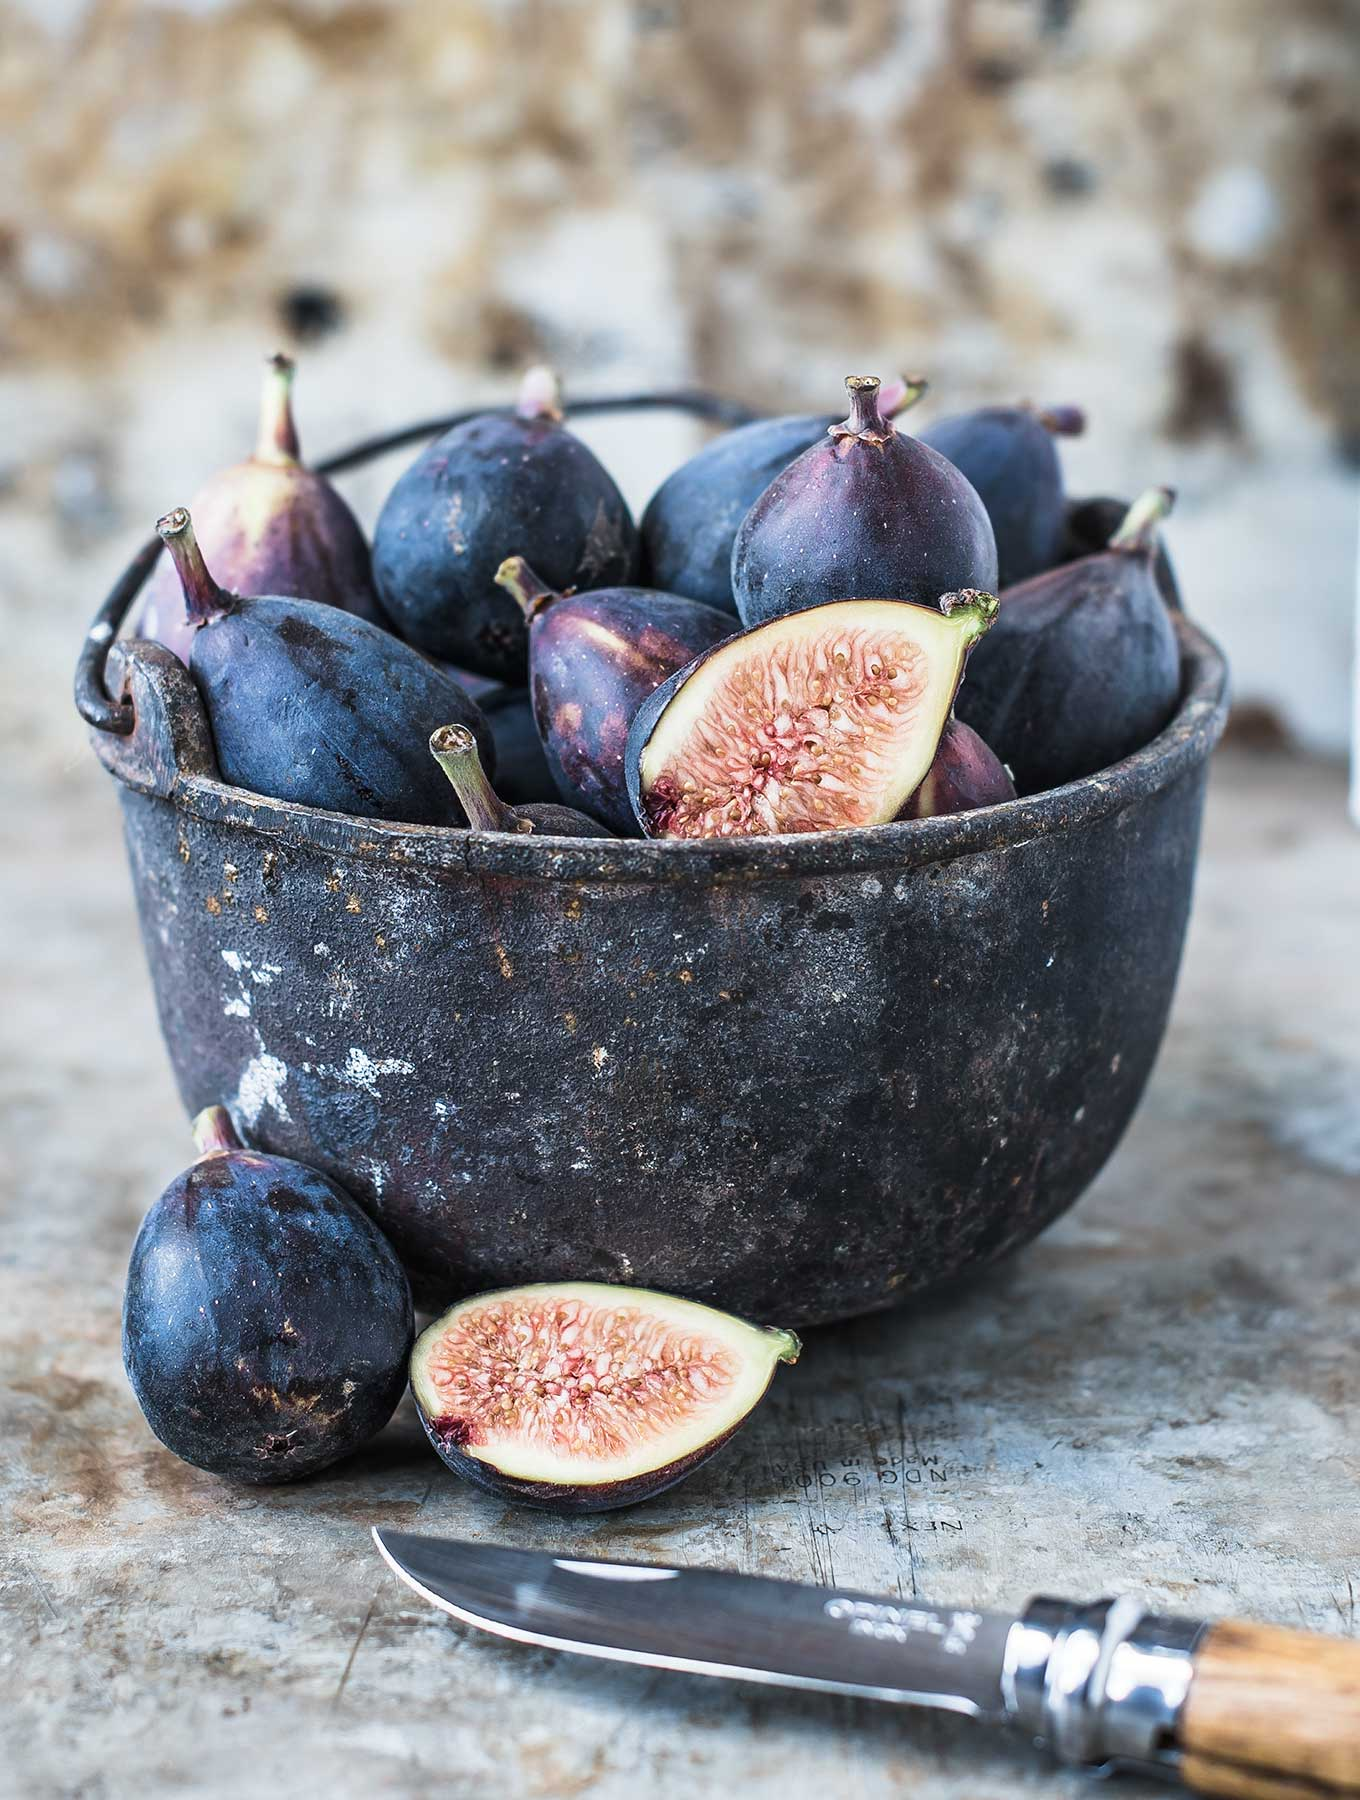 Bowl of fresh mission figs